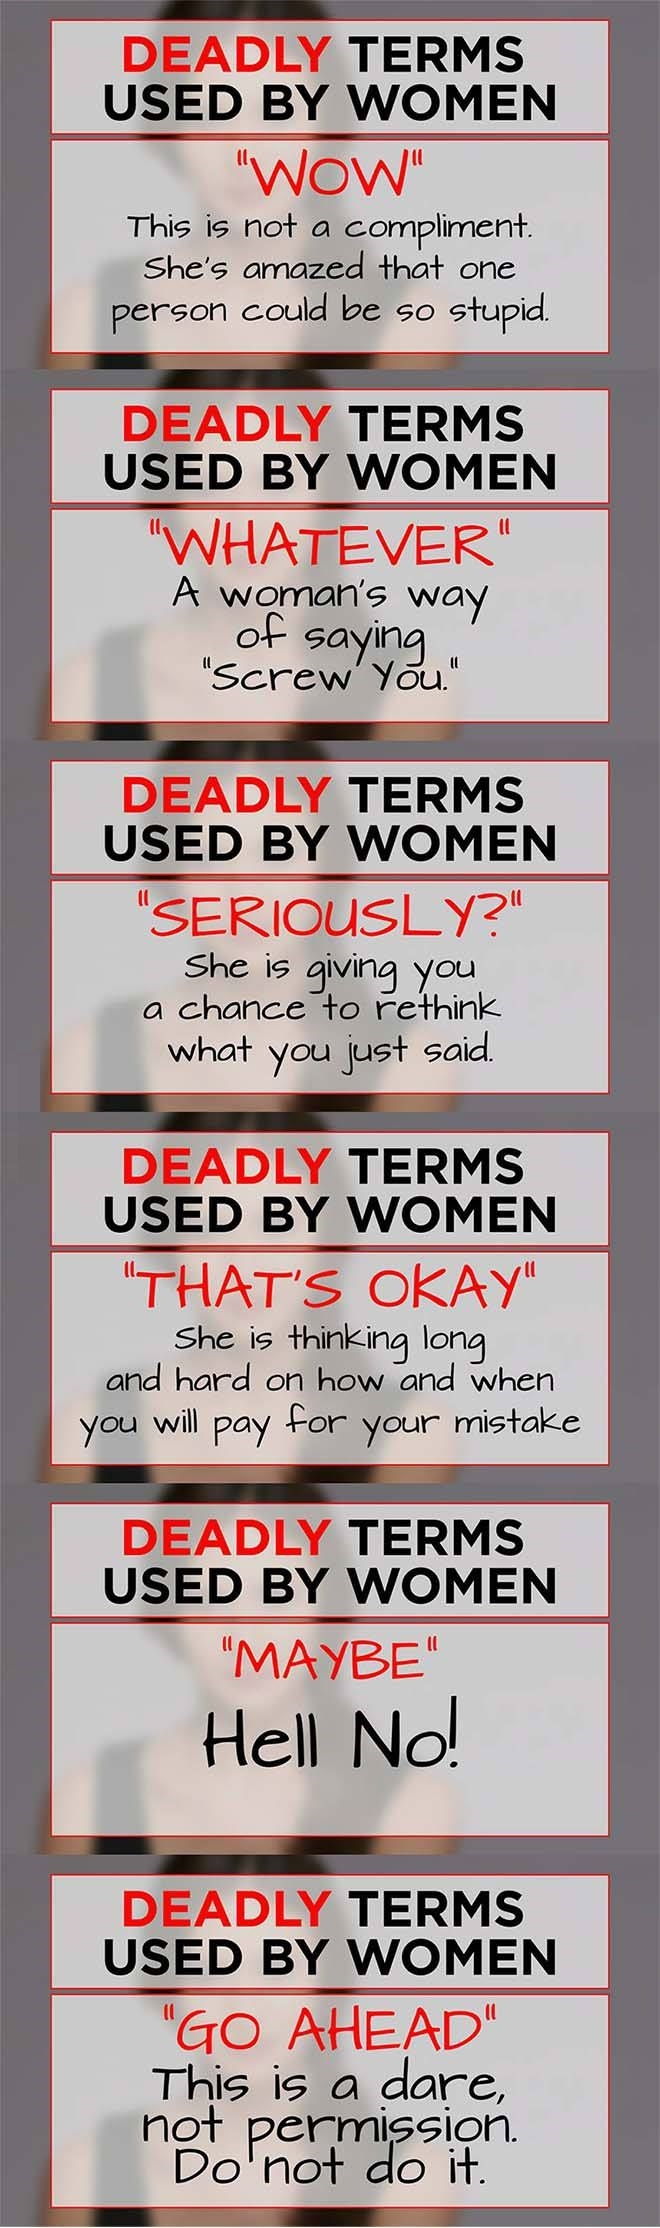 Deadly terms used by women